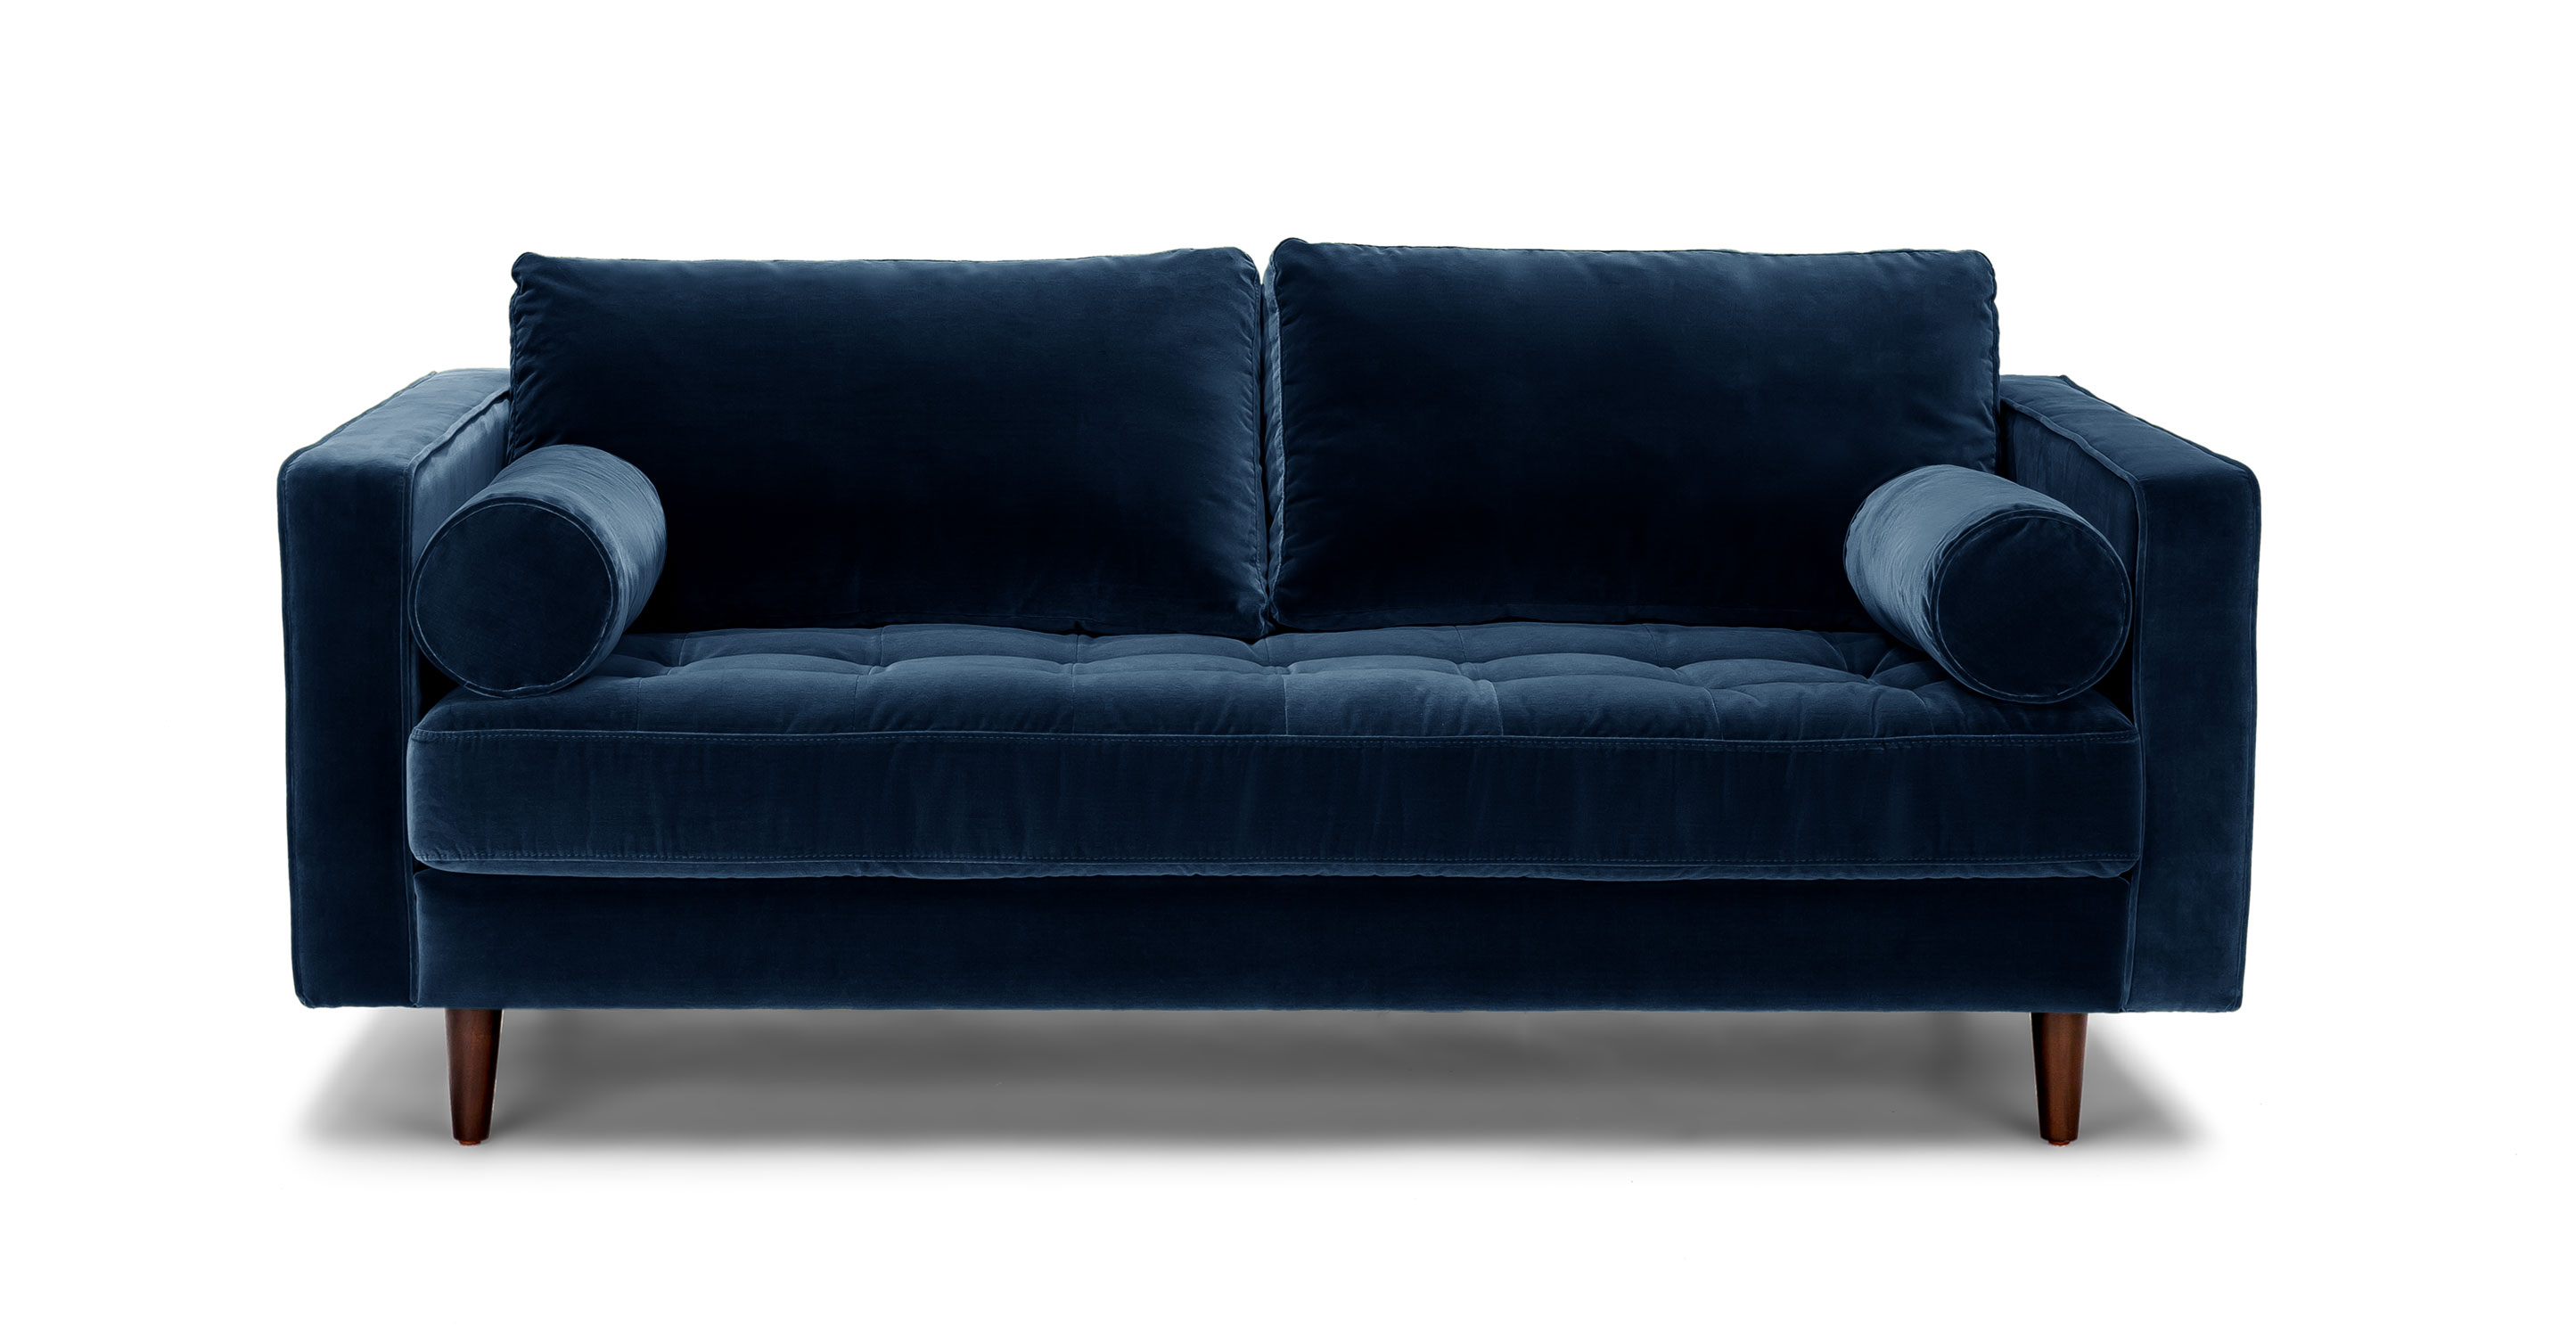 How to purchase seating furniture – velvet sofa